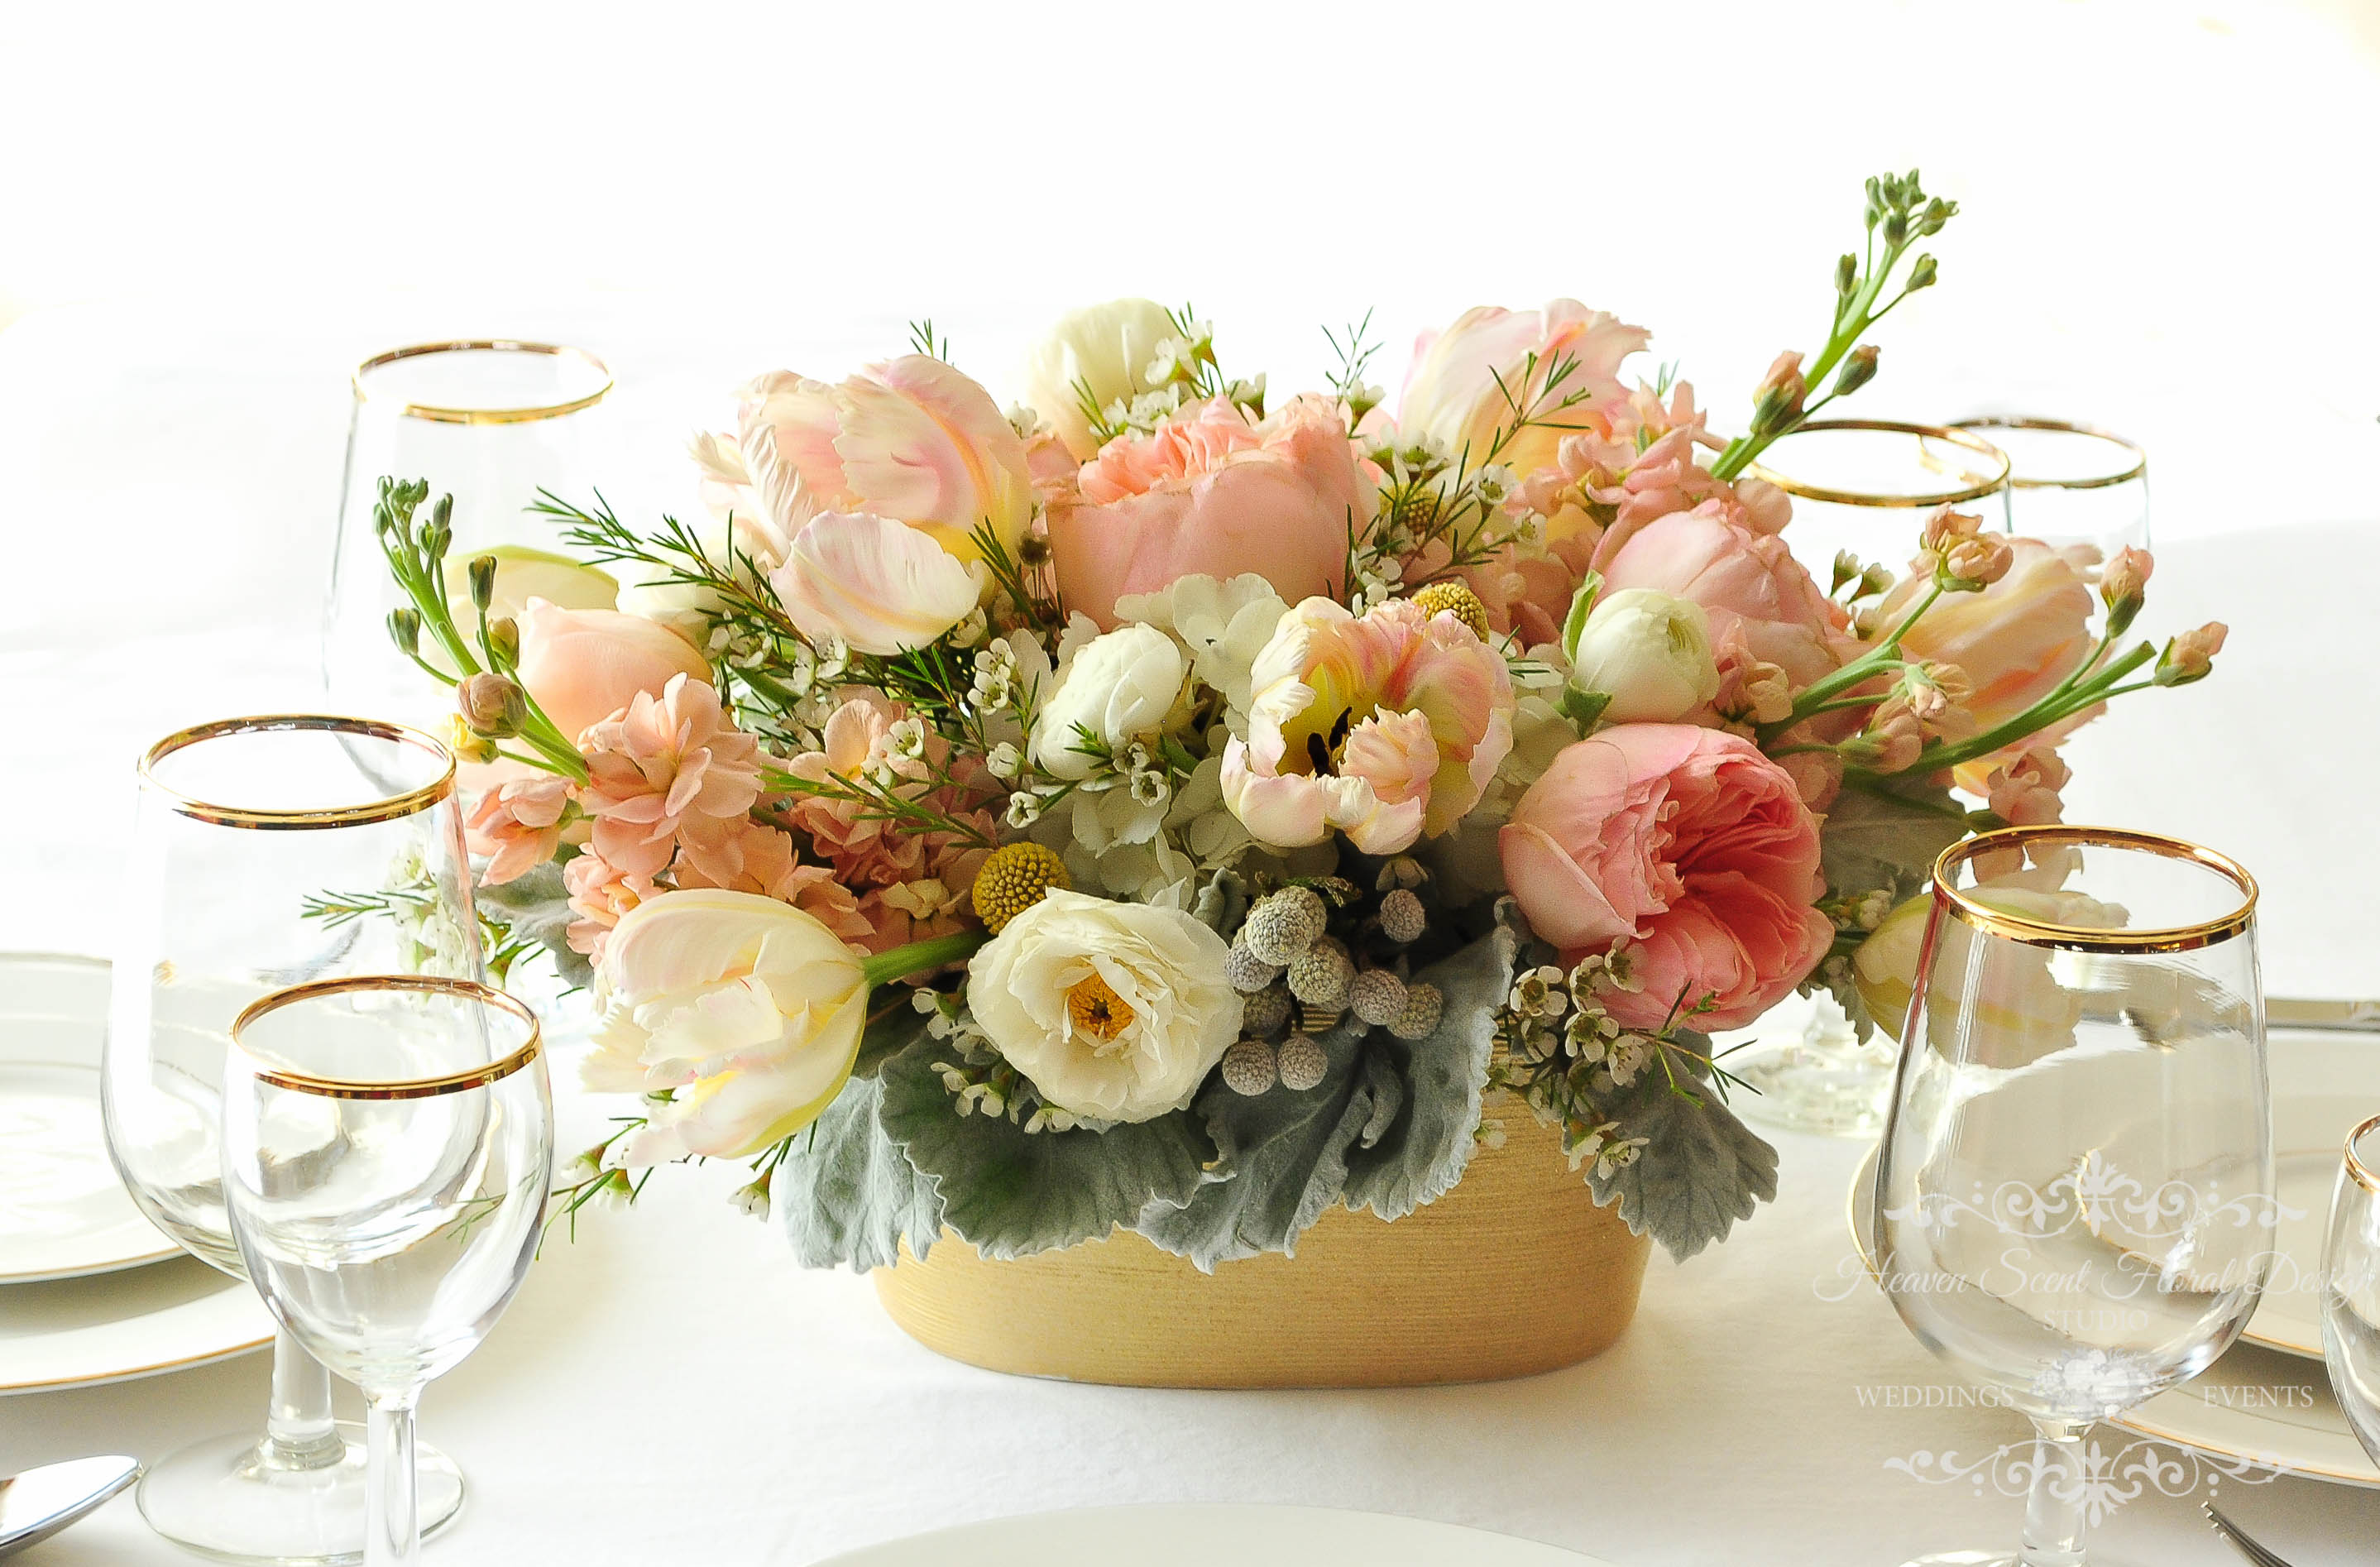 Peach and blush wedding flowers